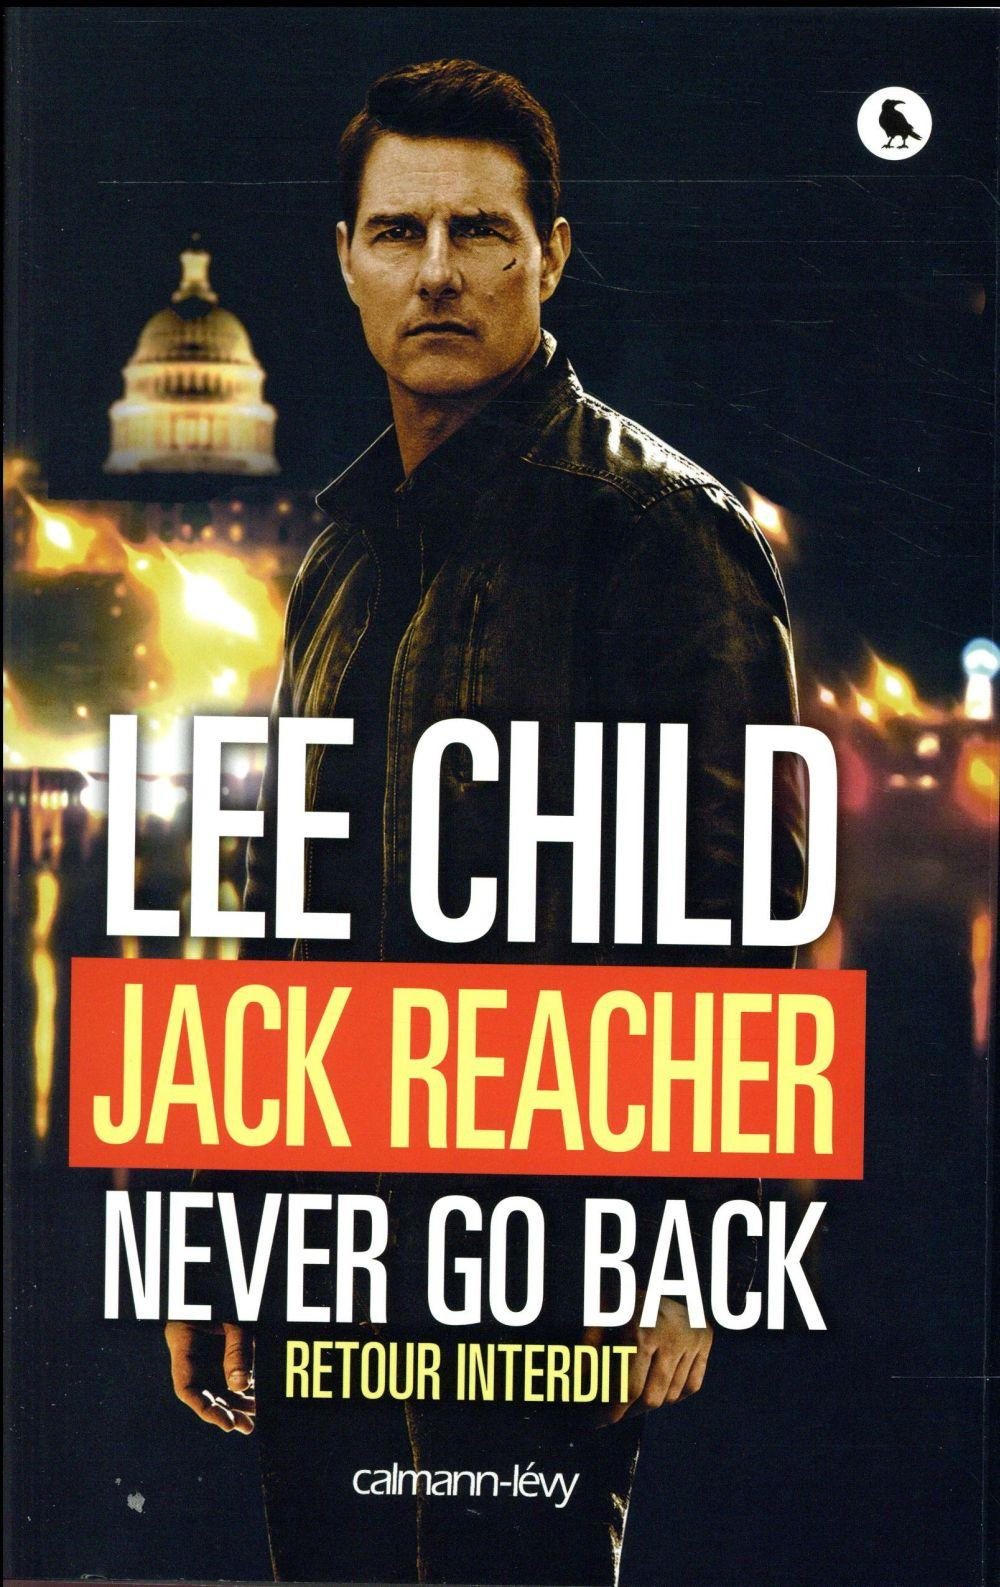 Jack Reacher never go back  - Lee Child